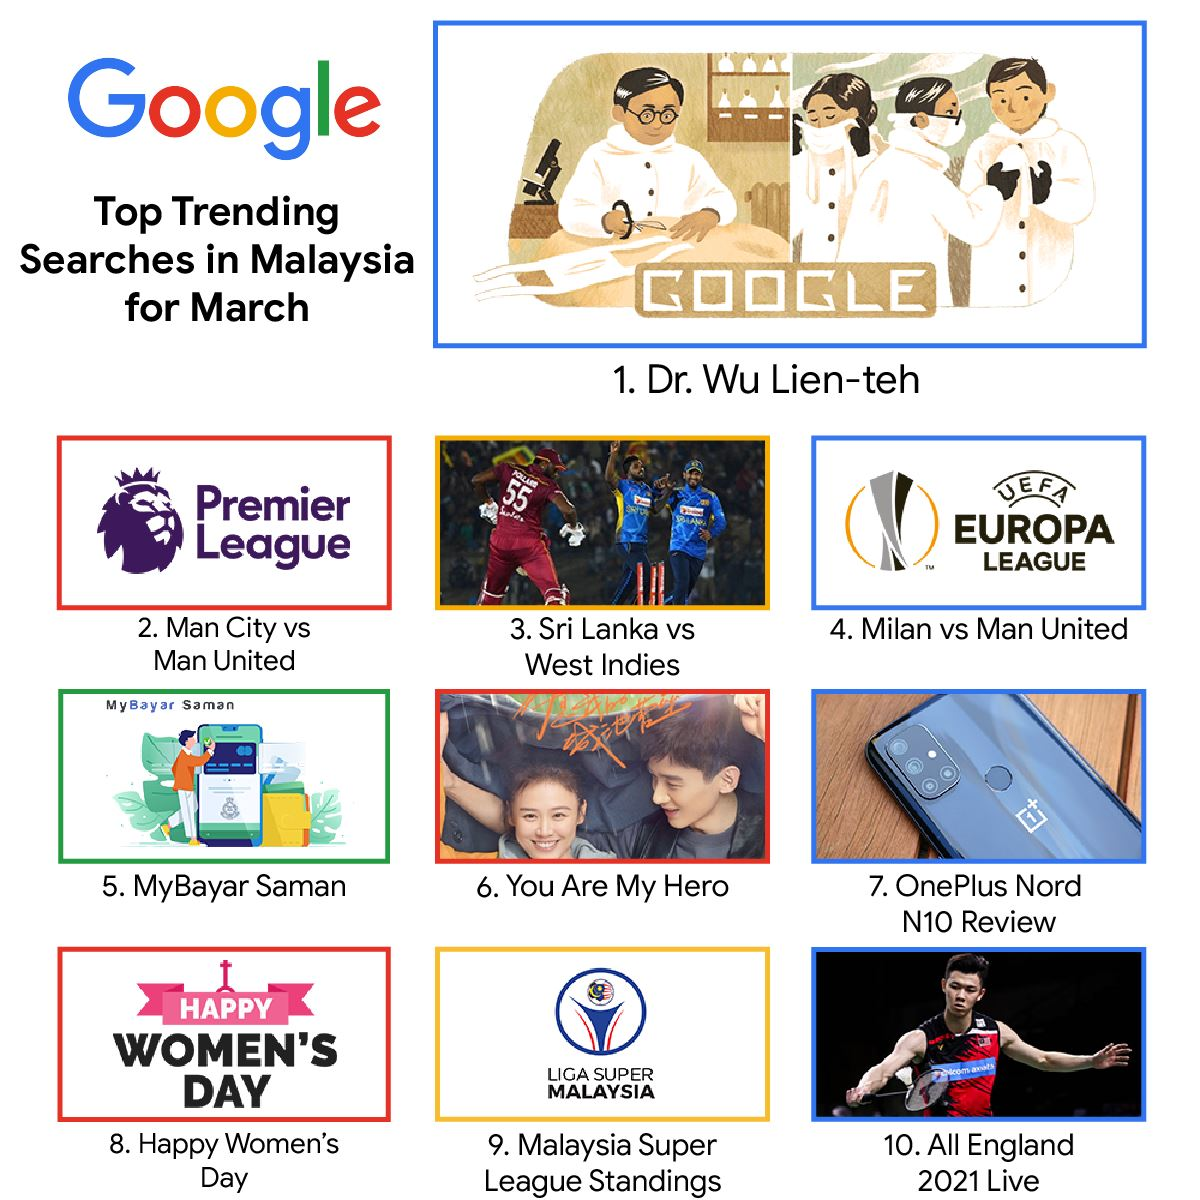 what were the top trending searches in malaysia for march 2021